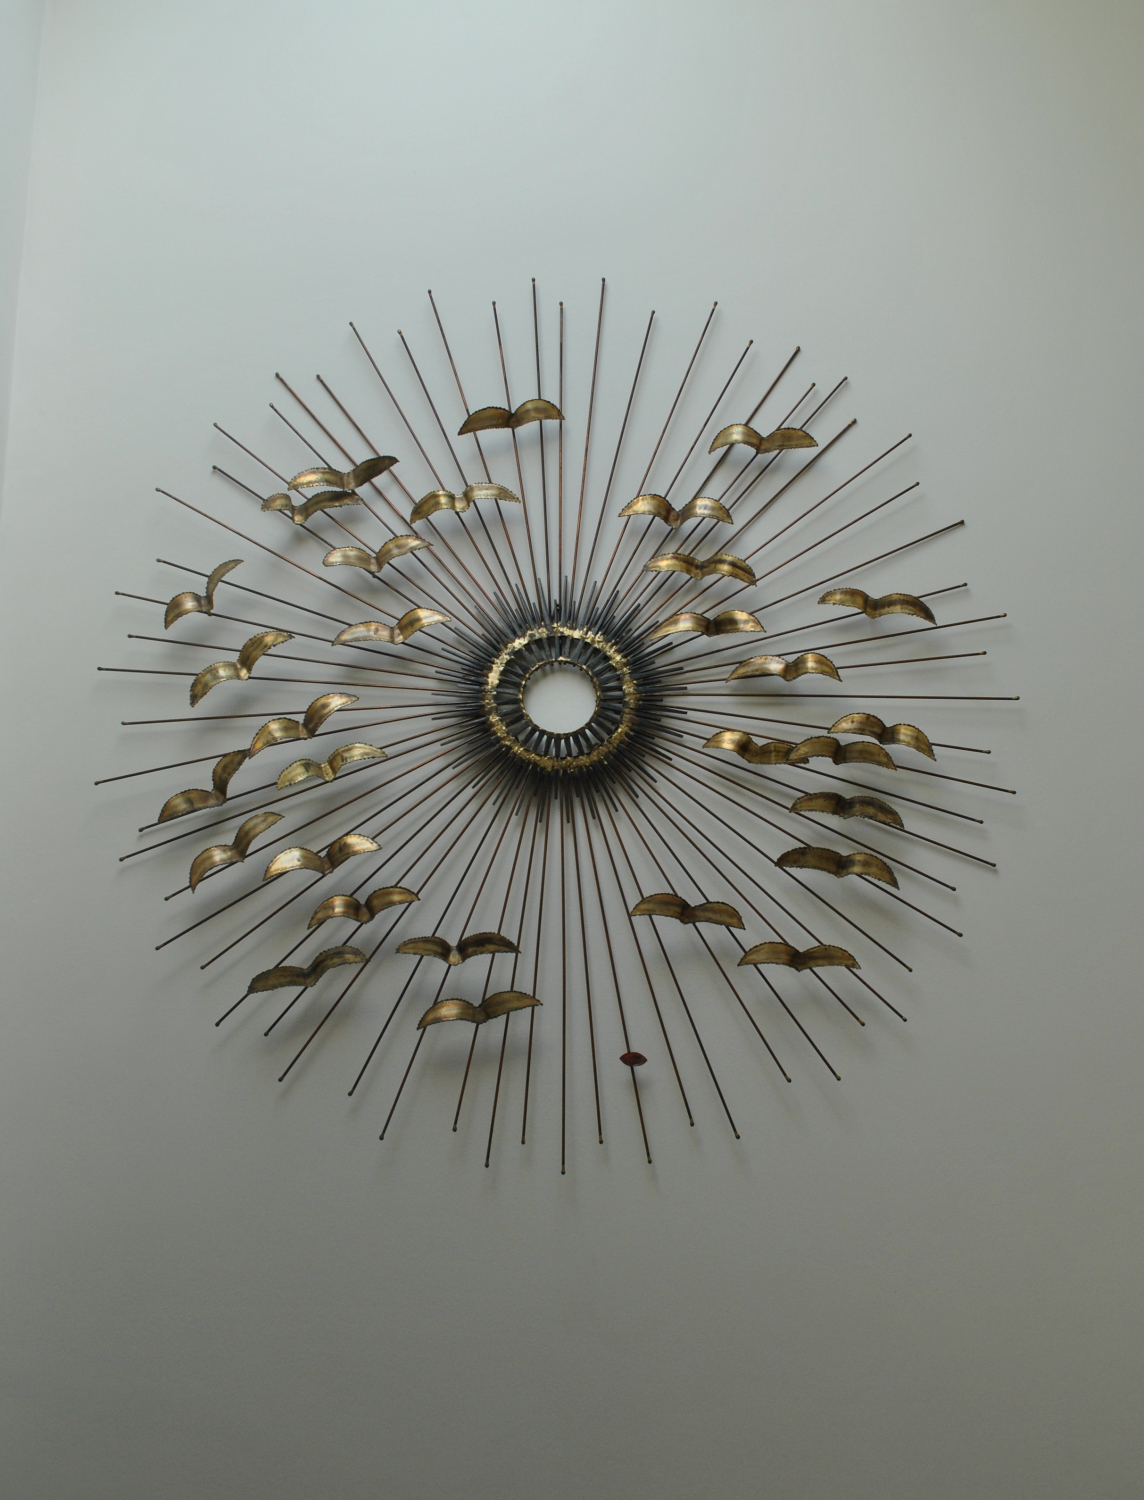 Sunburst Wall Sculpture With Birds